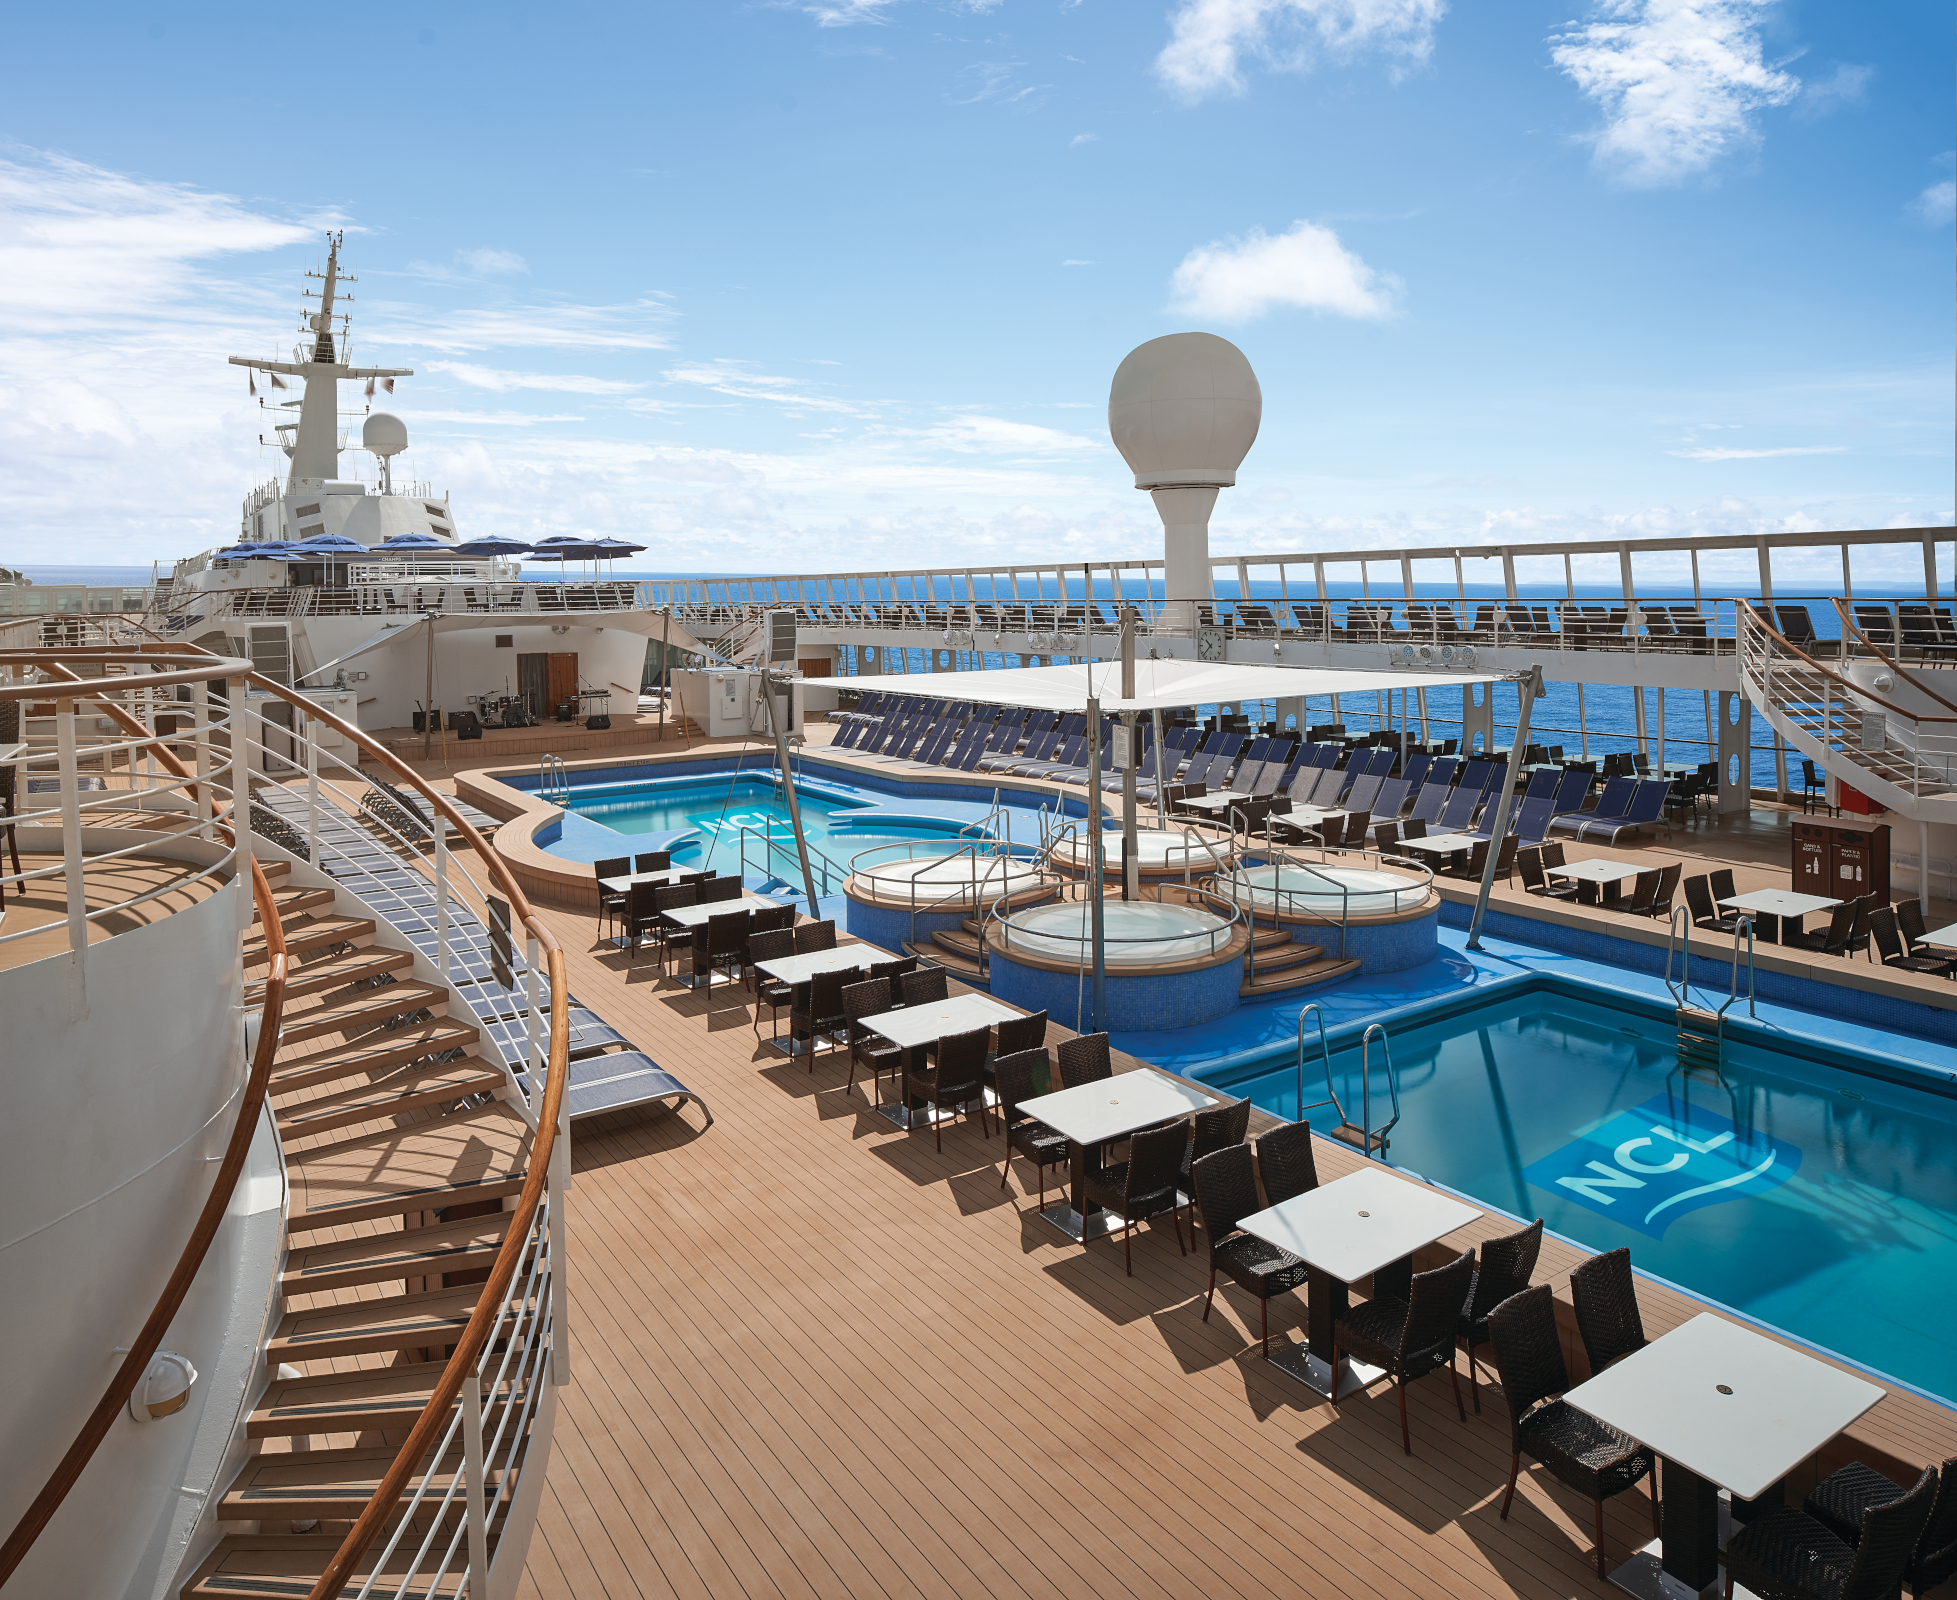 Caribbean & Cuba Cruise from Miami Cruise holiday on Norwegian Sky 10 night